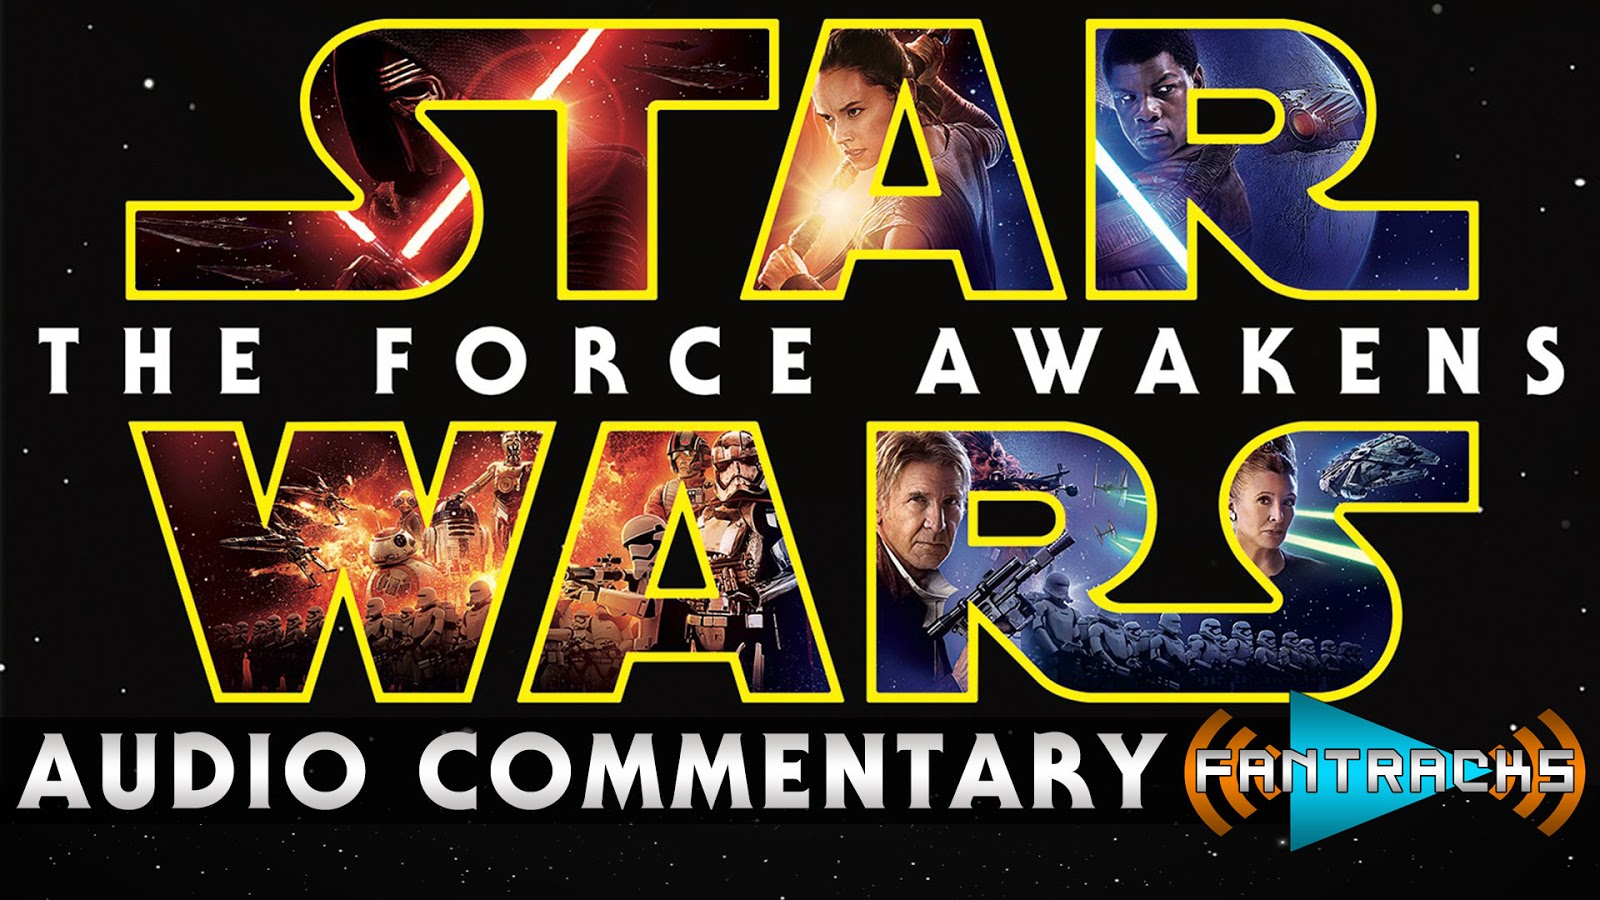 FanTracks Star Wars Episode 7 The Force Awakens audio commentary